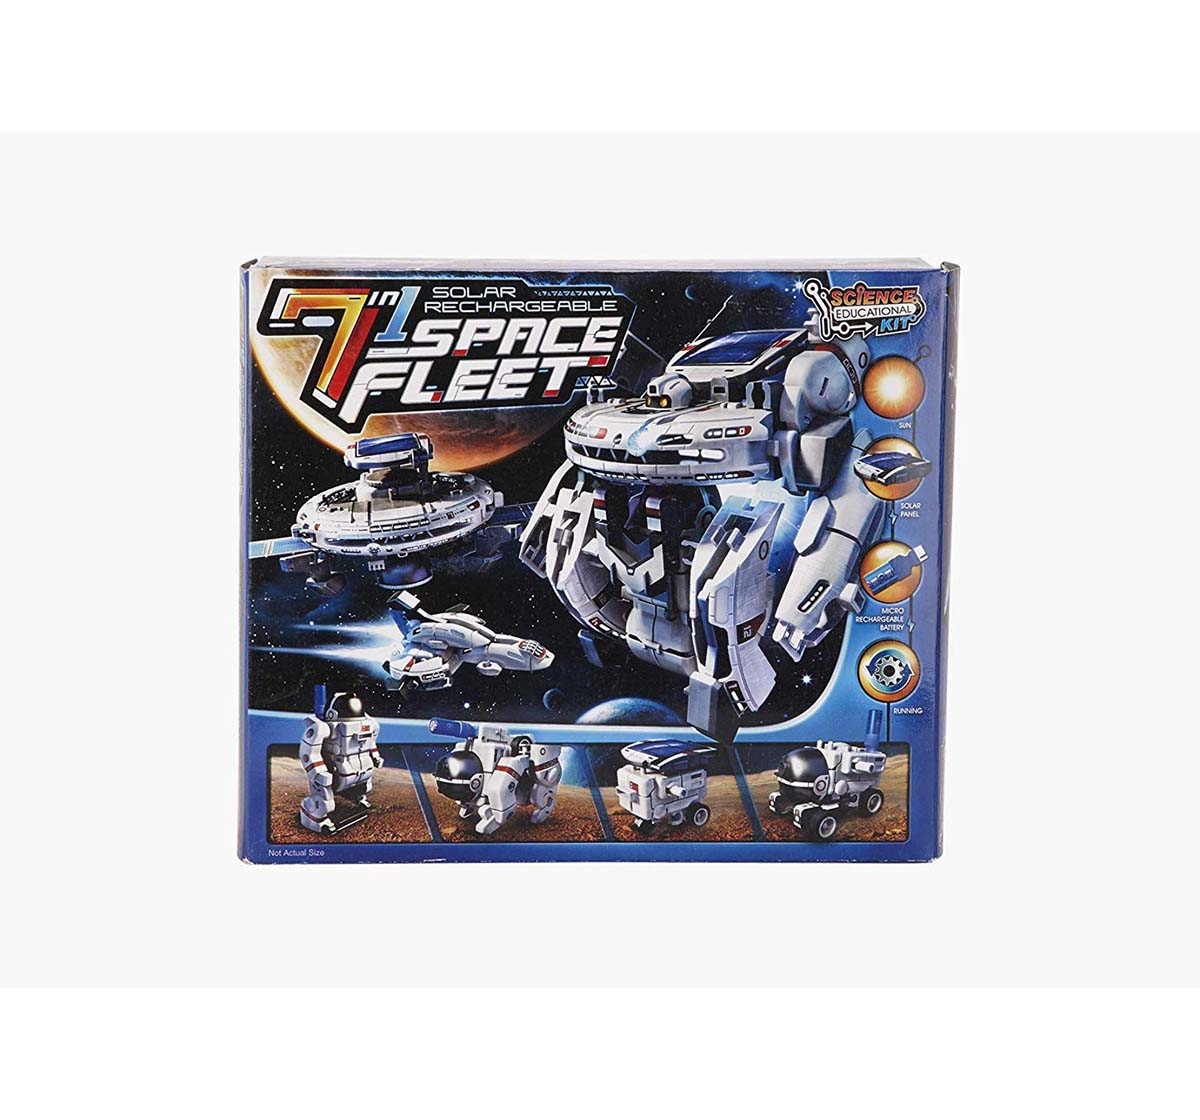 Red 5 | Red 5 7 In 1 Solar Rechargeable Space Fleet Science Kits for Kids age 10Y+